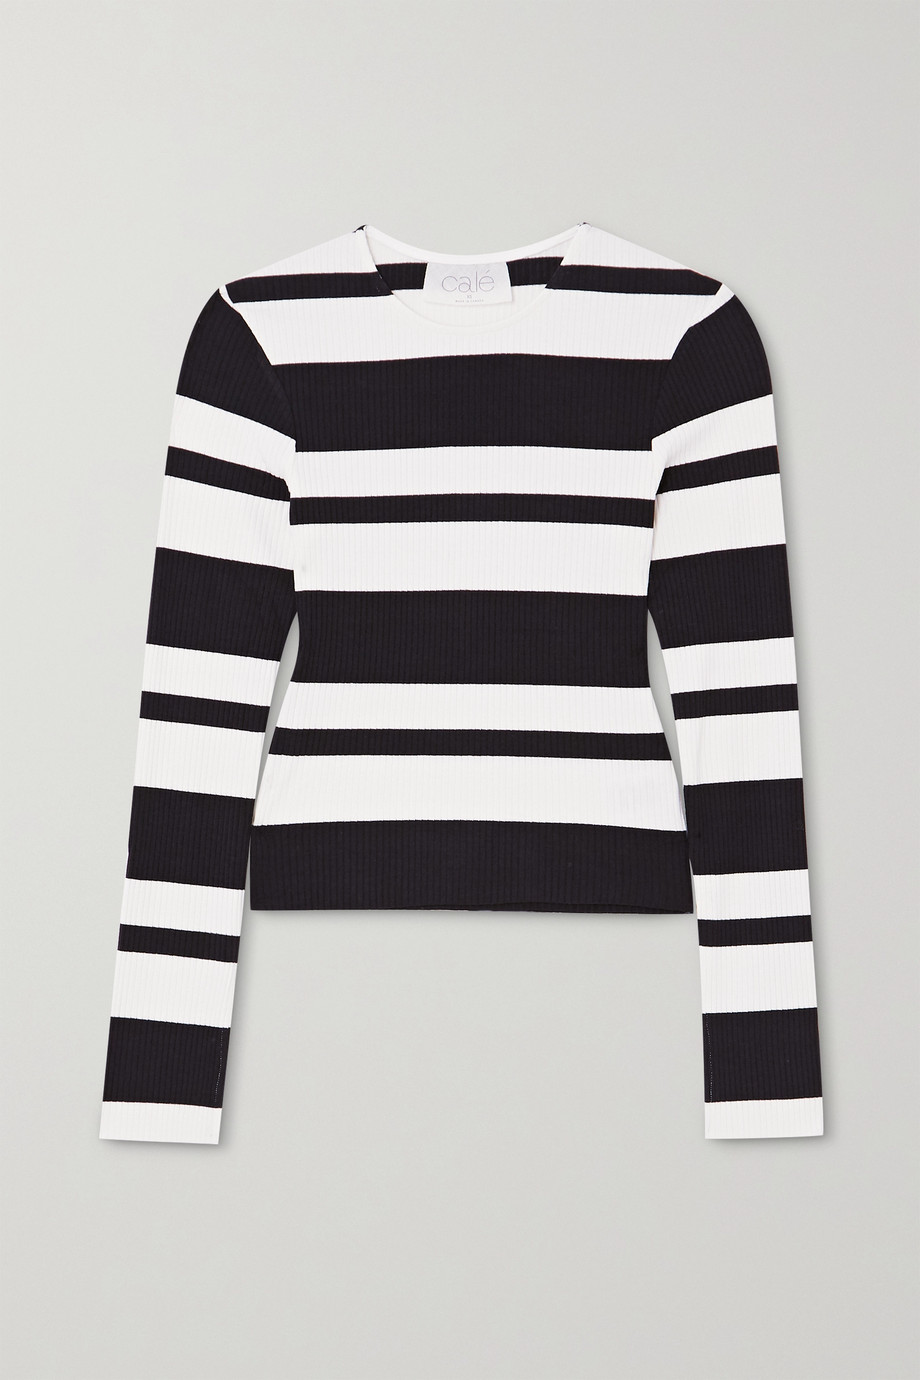 calé Veronique striped ribbed-knit top